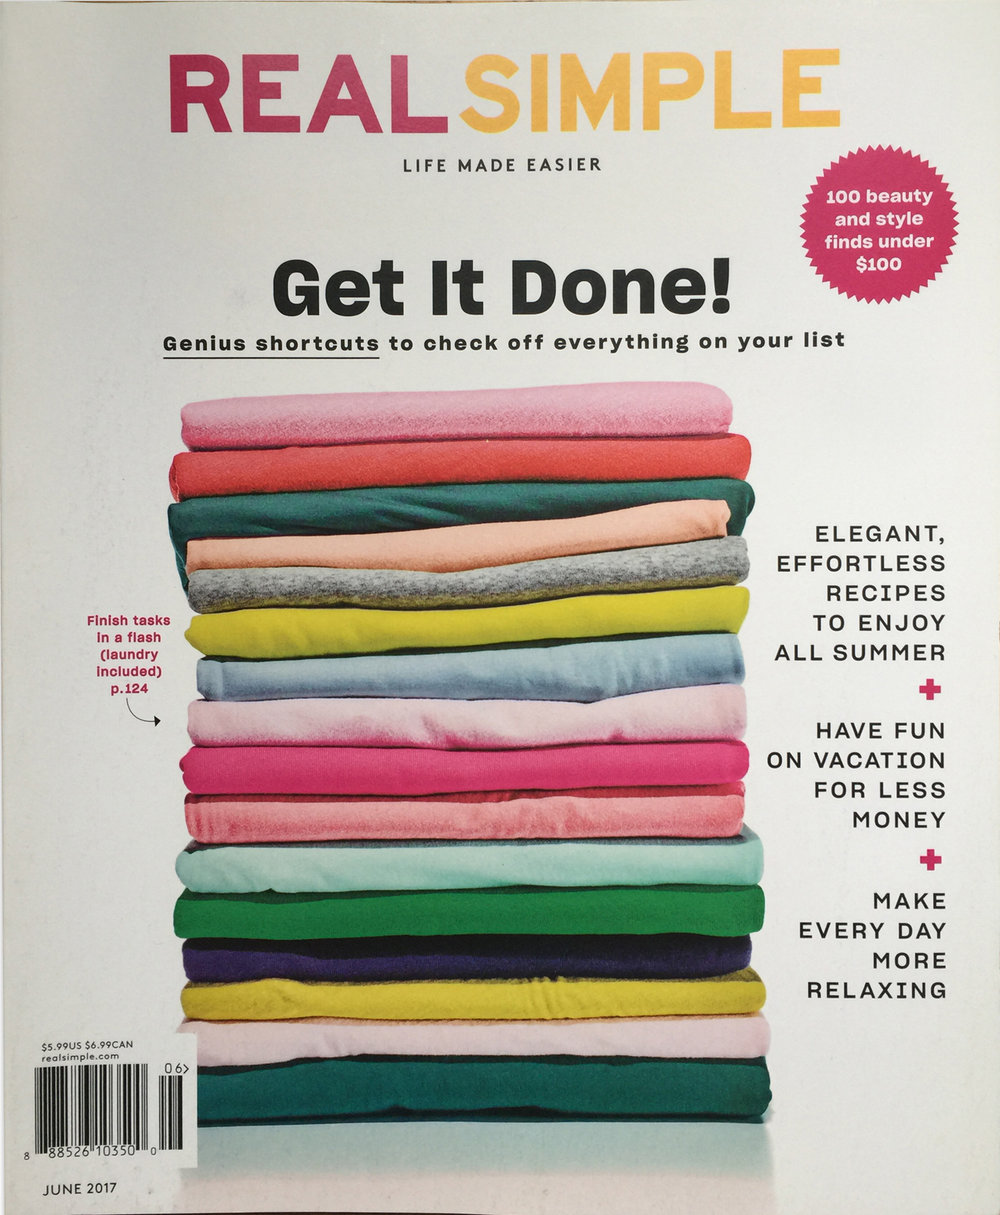 Real Simple June 2017 -